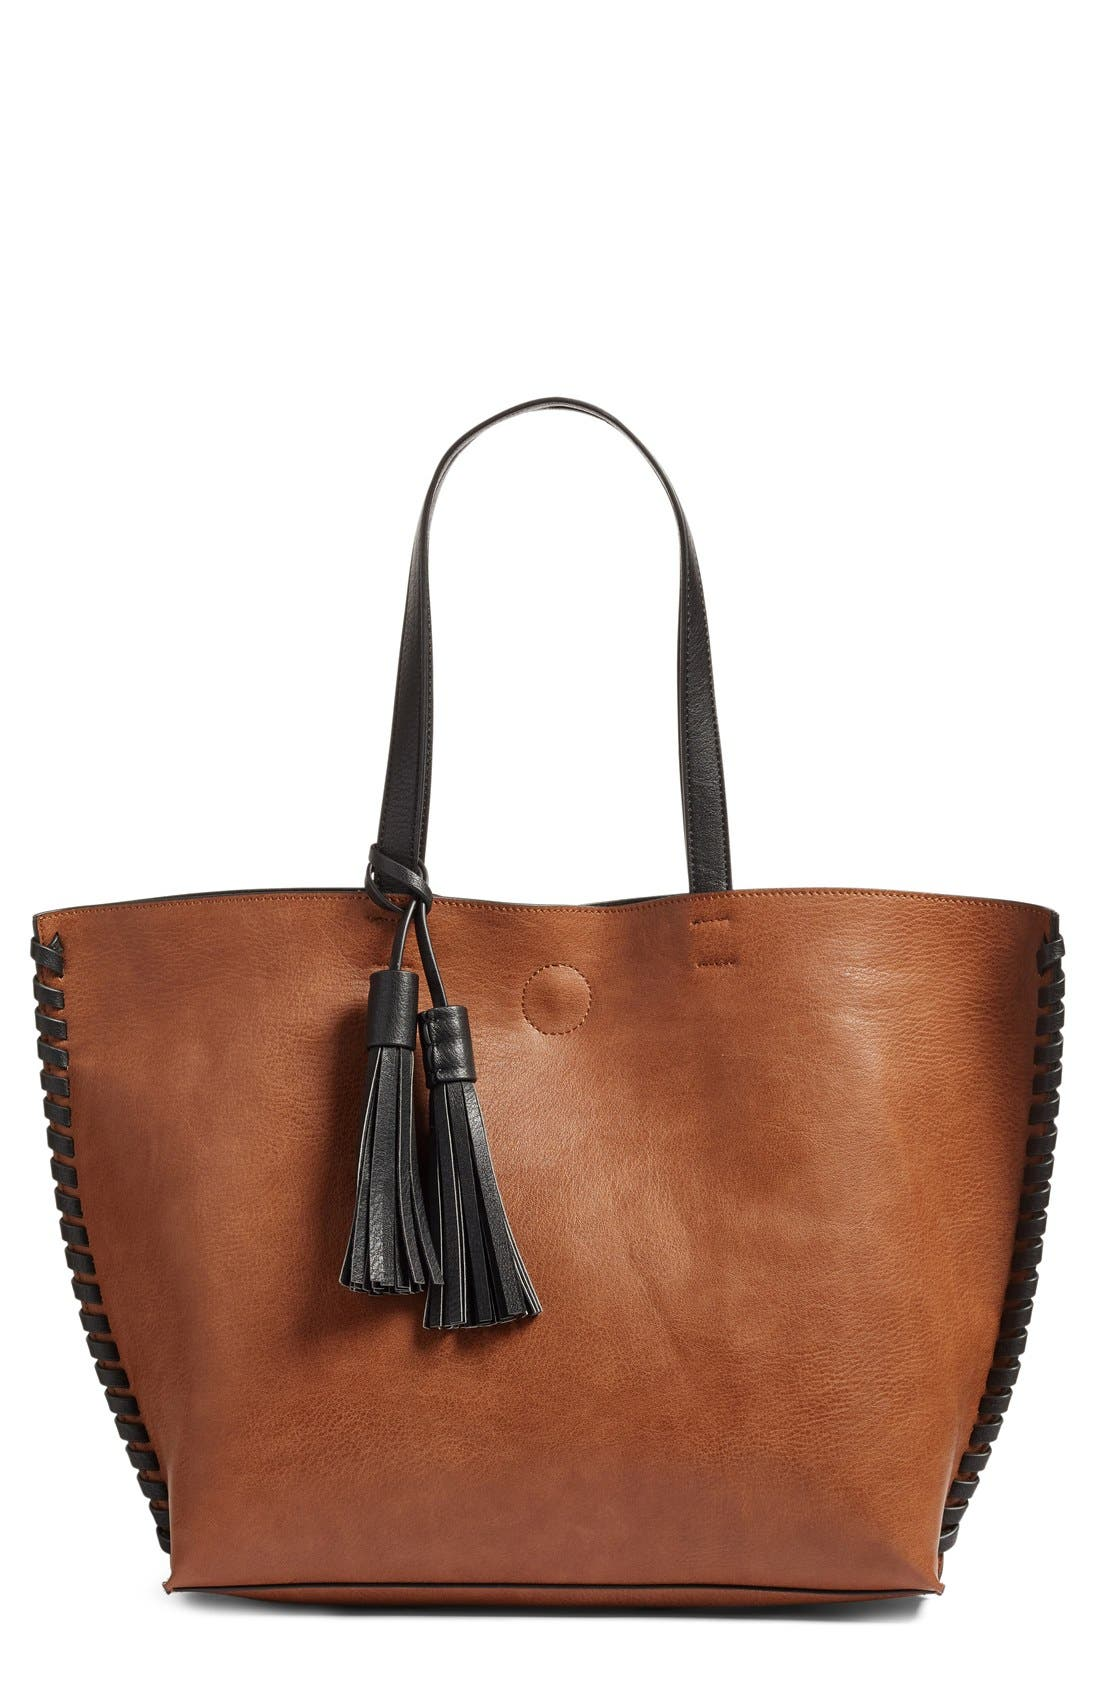 Alternate Image 1 Selected - Phase 3 Whipstitch Tassel Faux Leather Tote